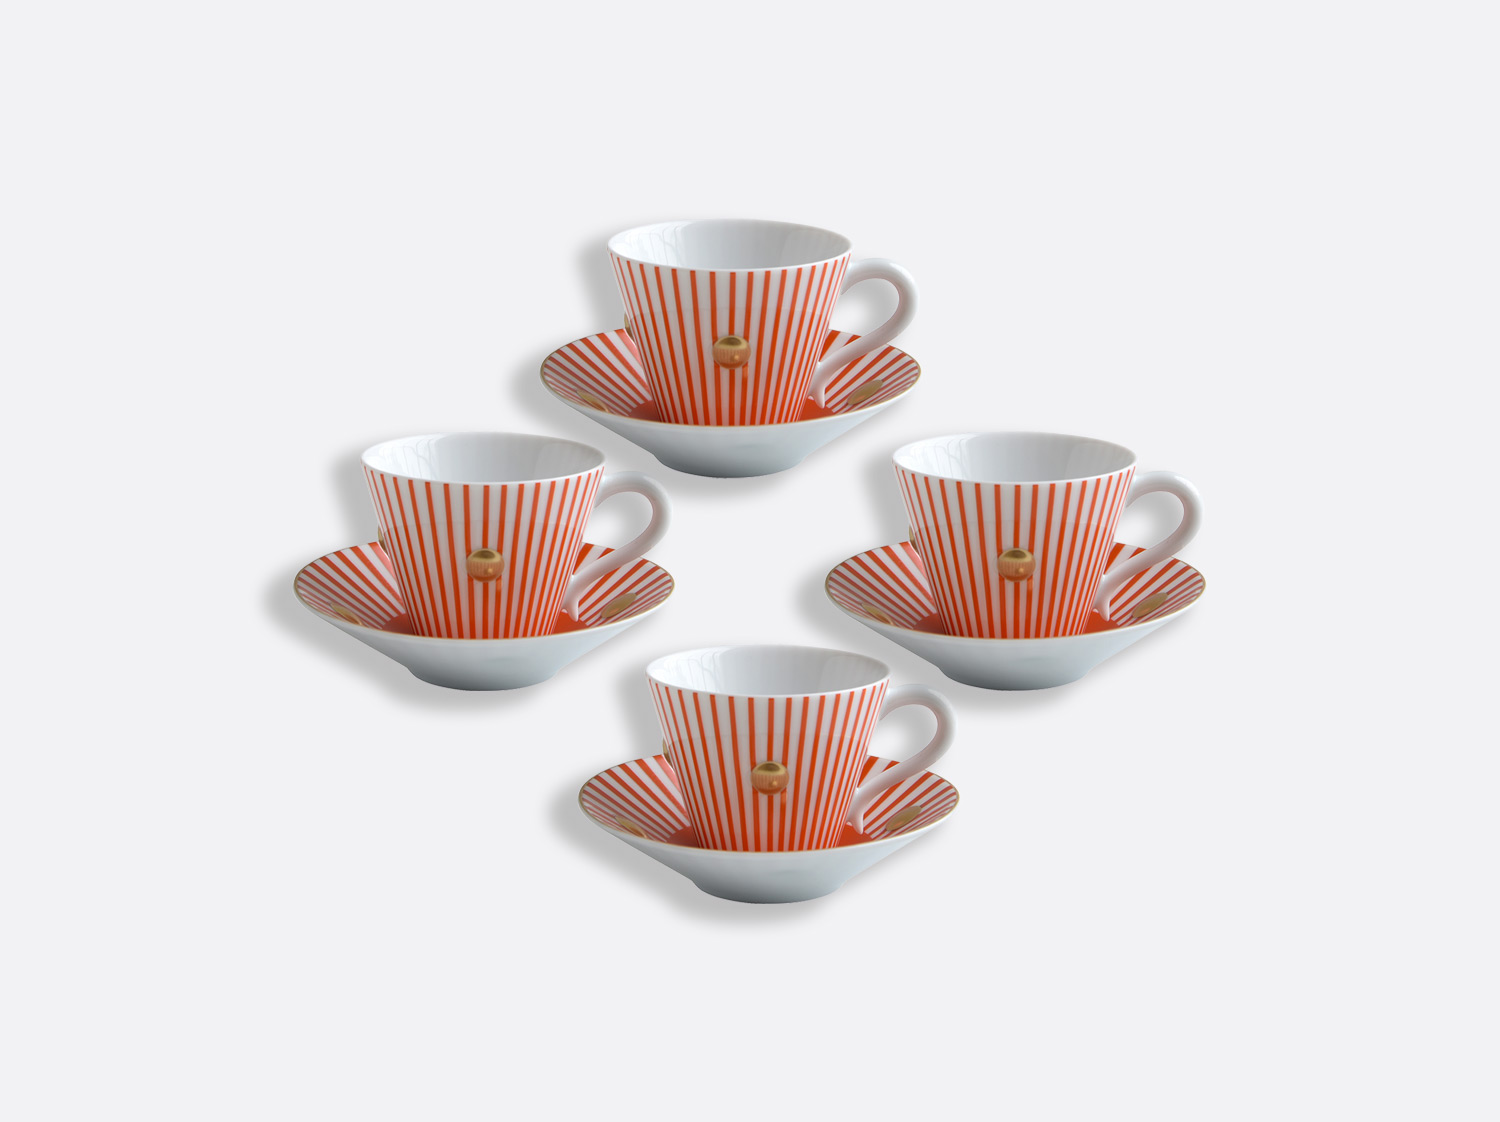 China Set of Brick red cups and saucers 13 cl - Set of 4 of the collection Delphos - Olivier Gagnère | Bernardaud